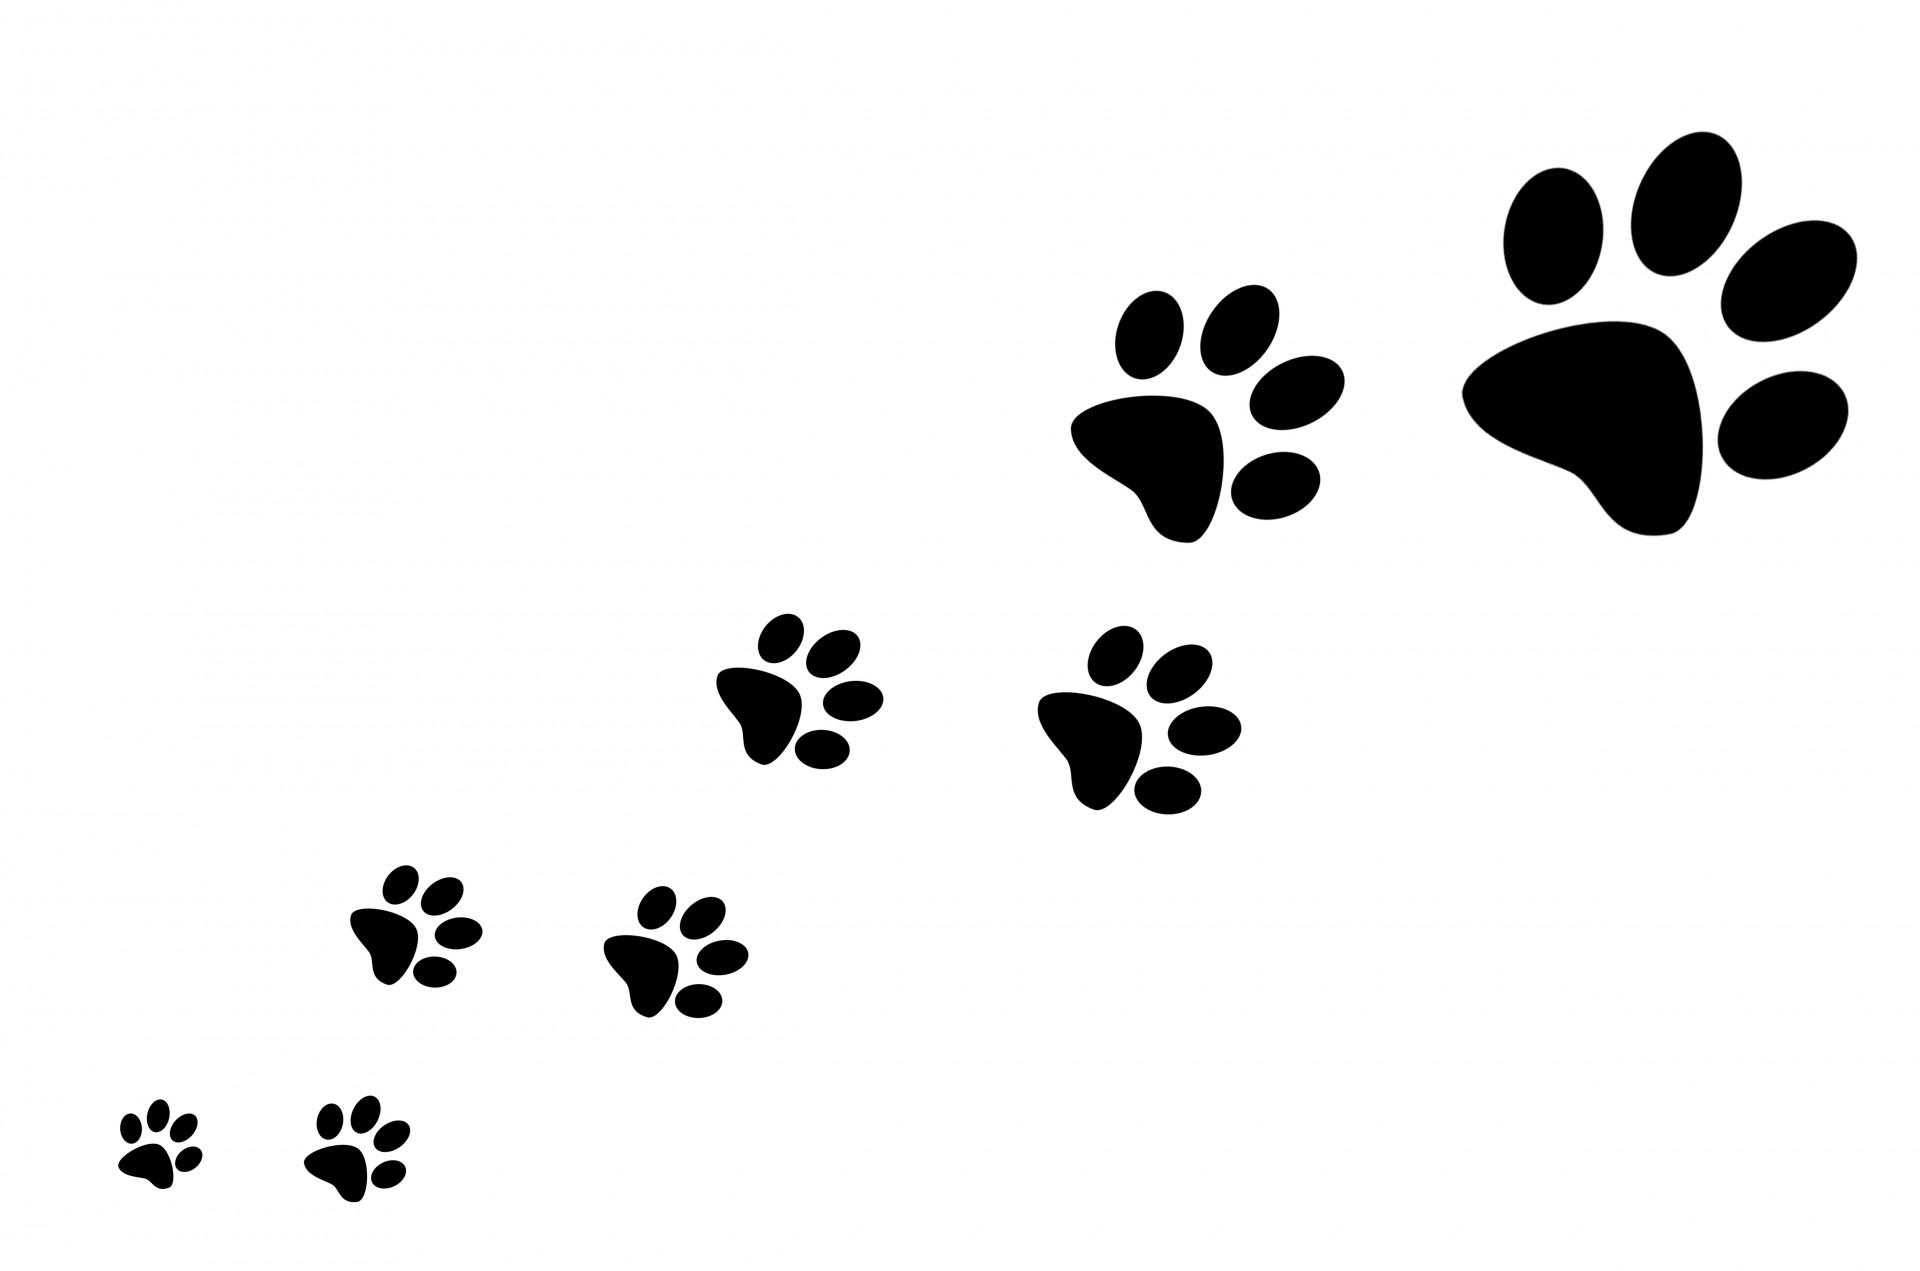 Free CAT PAW PRINTS, Download Free Clip Art, Free Clip Art.